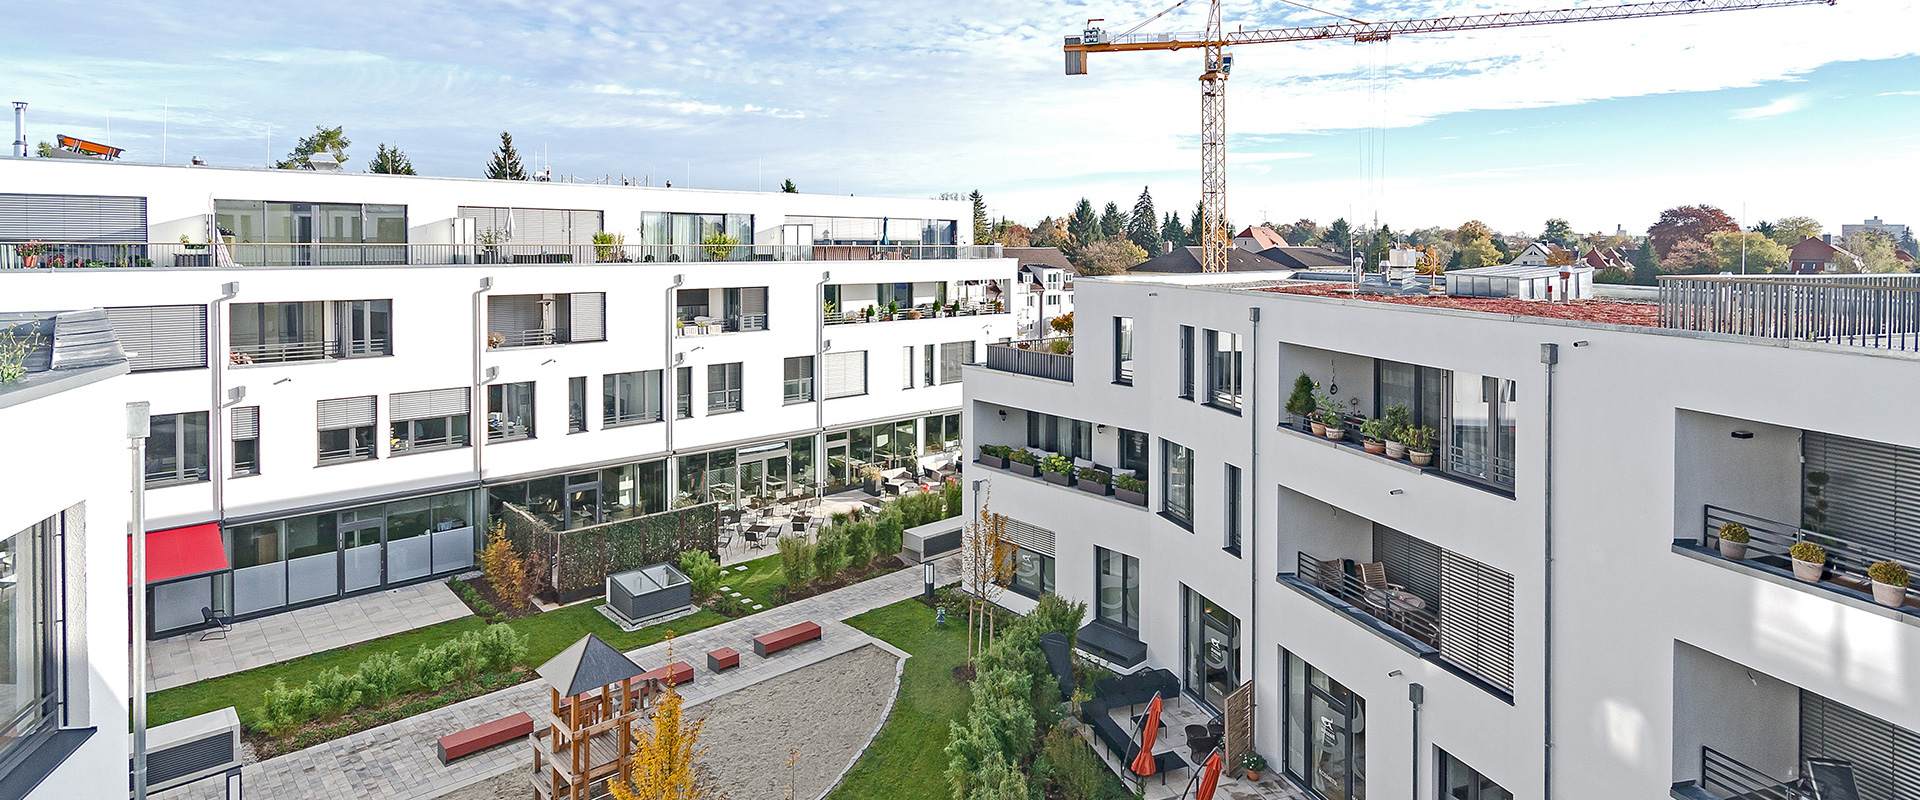 Ambiance Pasing. Condominium and commercial area in Munich Pasing